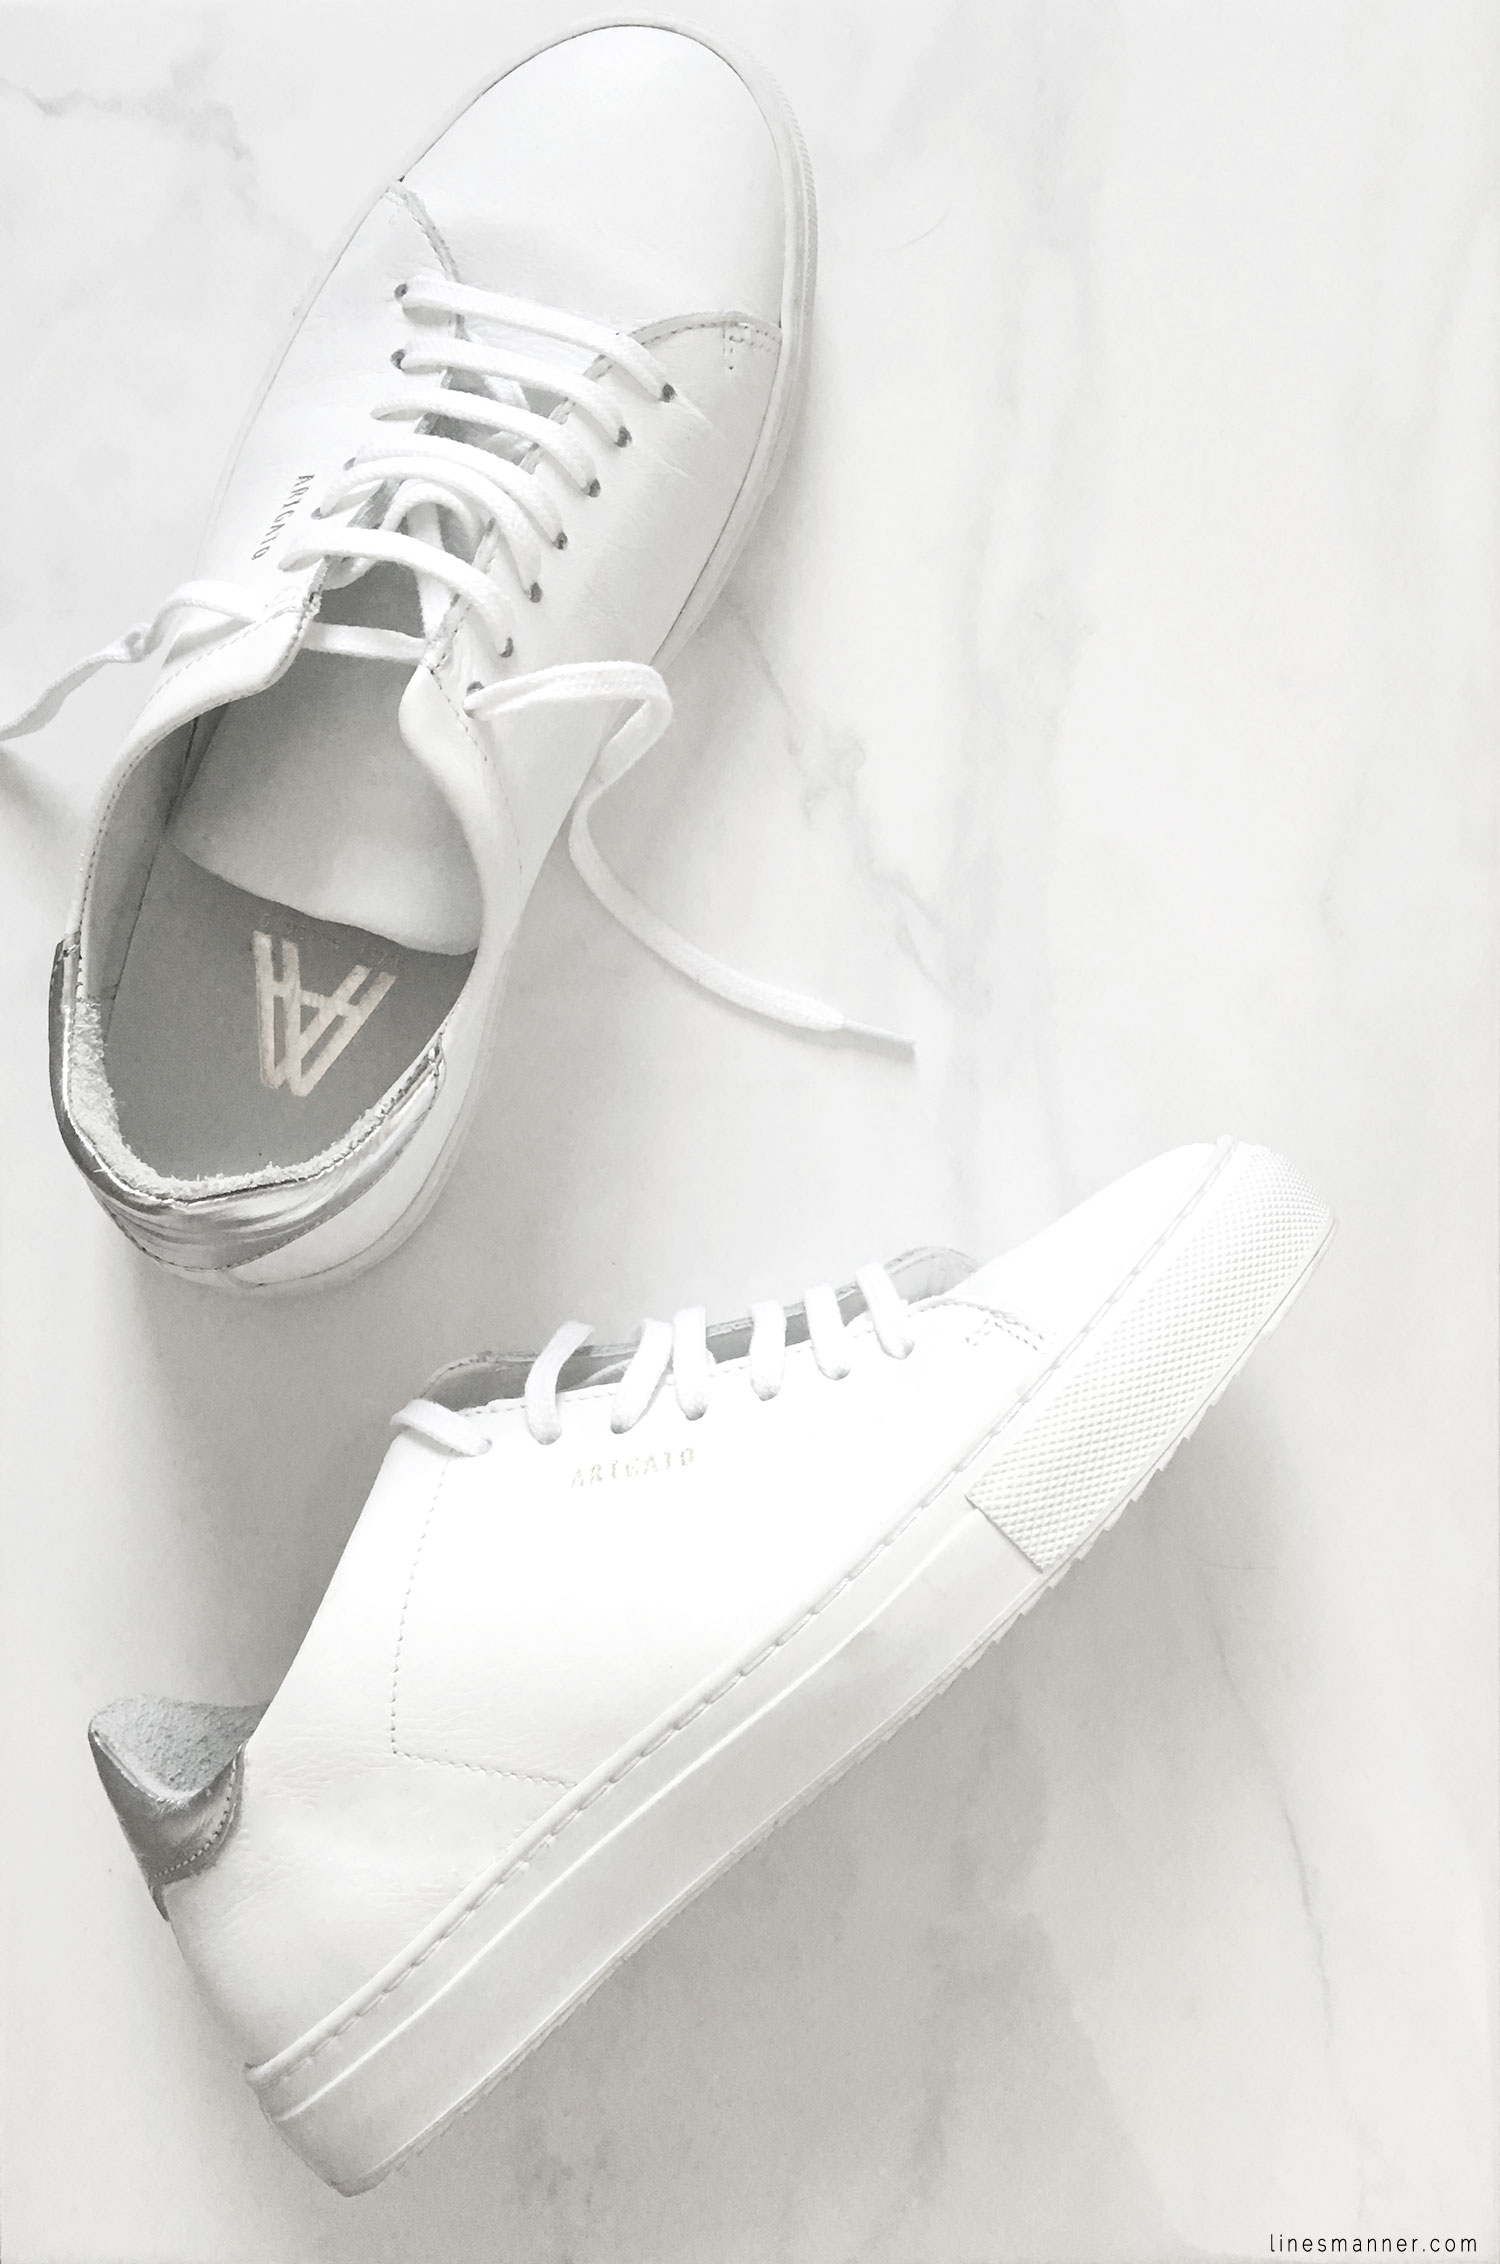 Lines-Manner-Minimal-Axel_Arigato-Sneakers-White-Essentials-Comfort-Luxe-Sporty-Edgy-Timeless-2